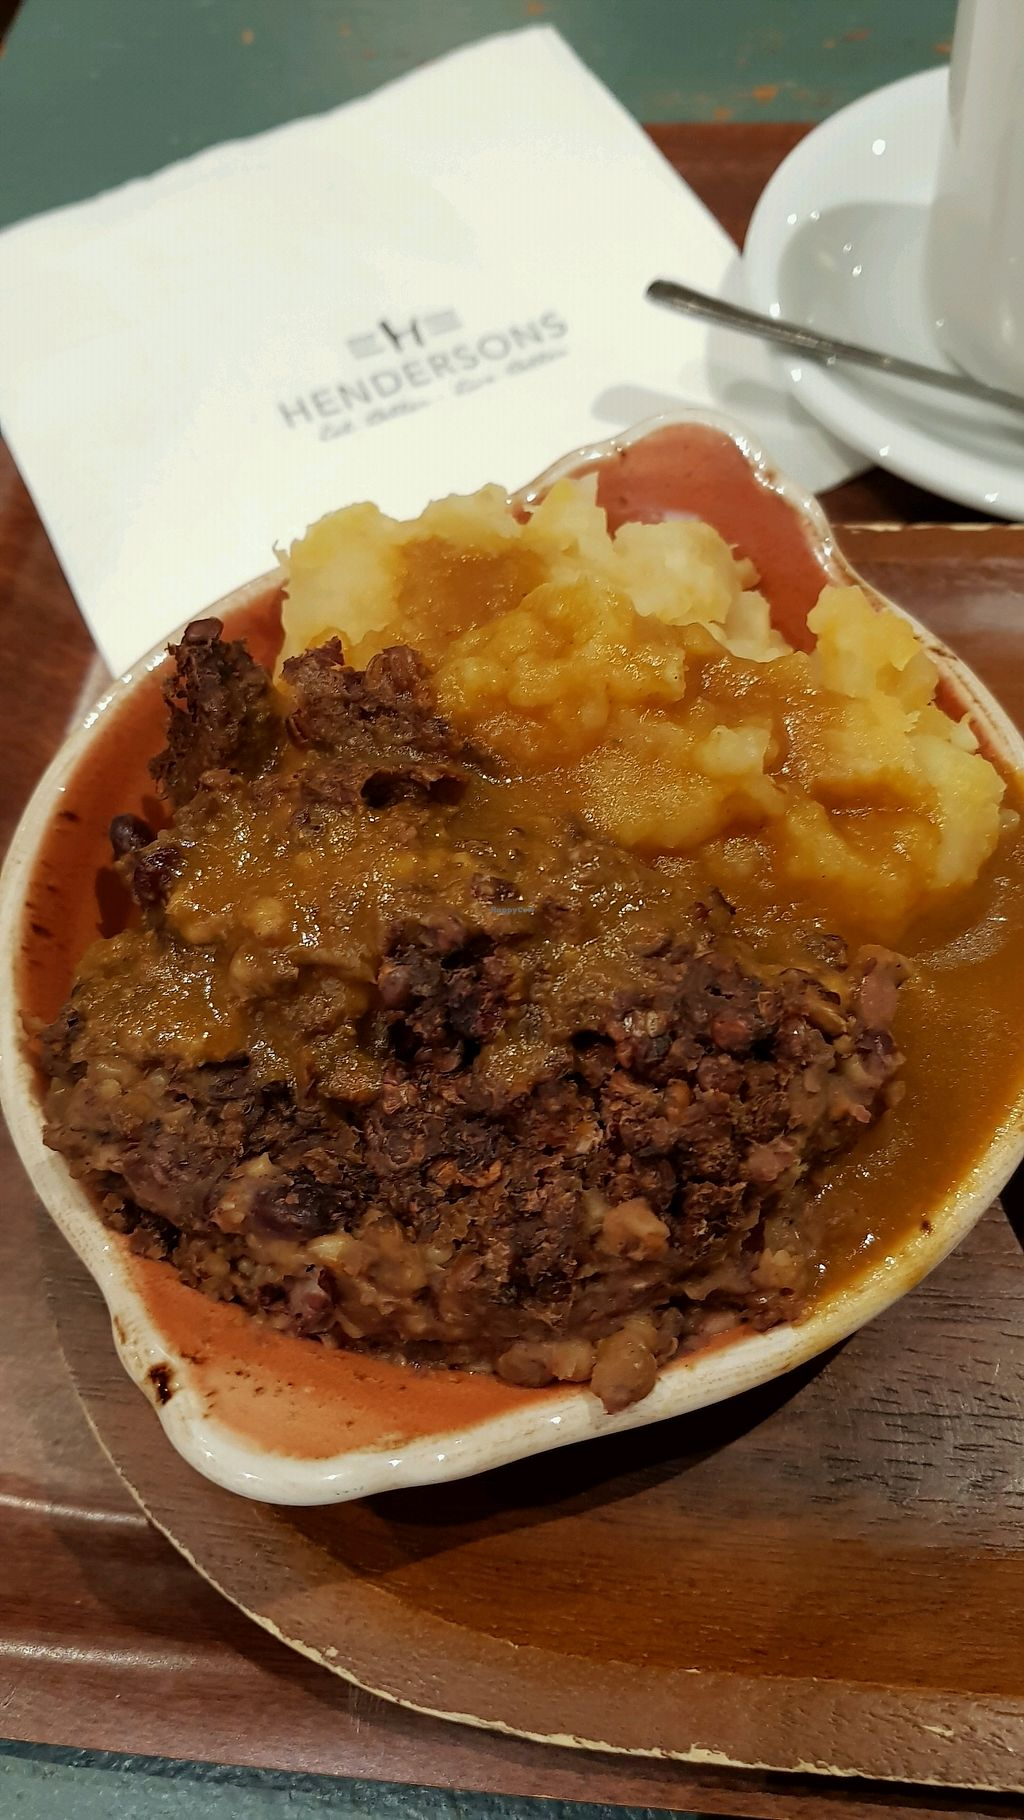 """Photo of Henderson's - Holyrood  by <a href=""""/members/profile/MoniqueNelson"""">MoniqueNelson</a> <br/>Vegan Haggis & Mash <br/> January 15, 2018  - <a href='/contact/abuse/image/68540/347006'>Report</a>"""